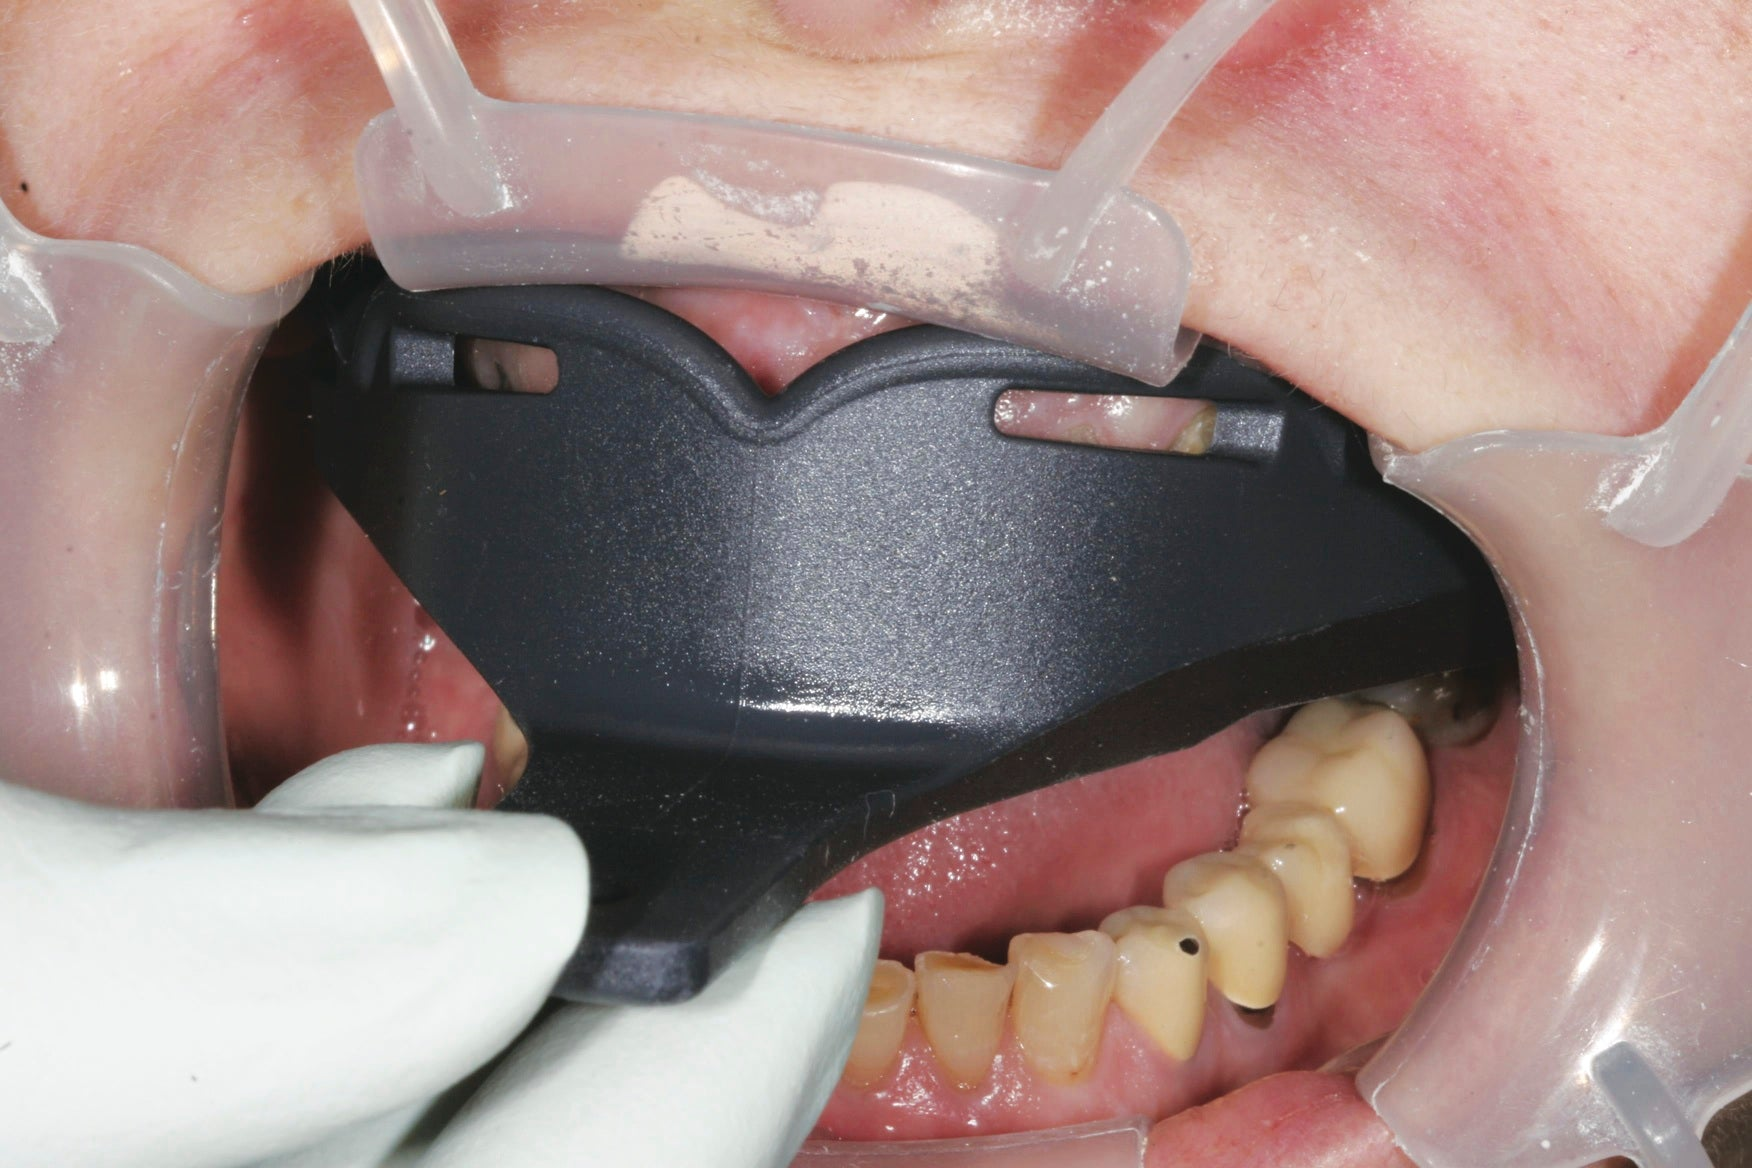 Try-in the Border-Lock tray prior to syringing impression material to ensure a correct fit.